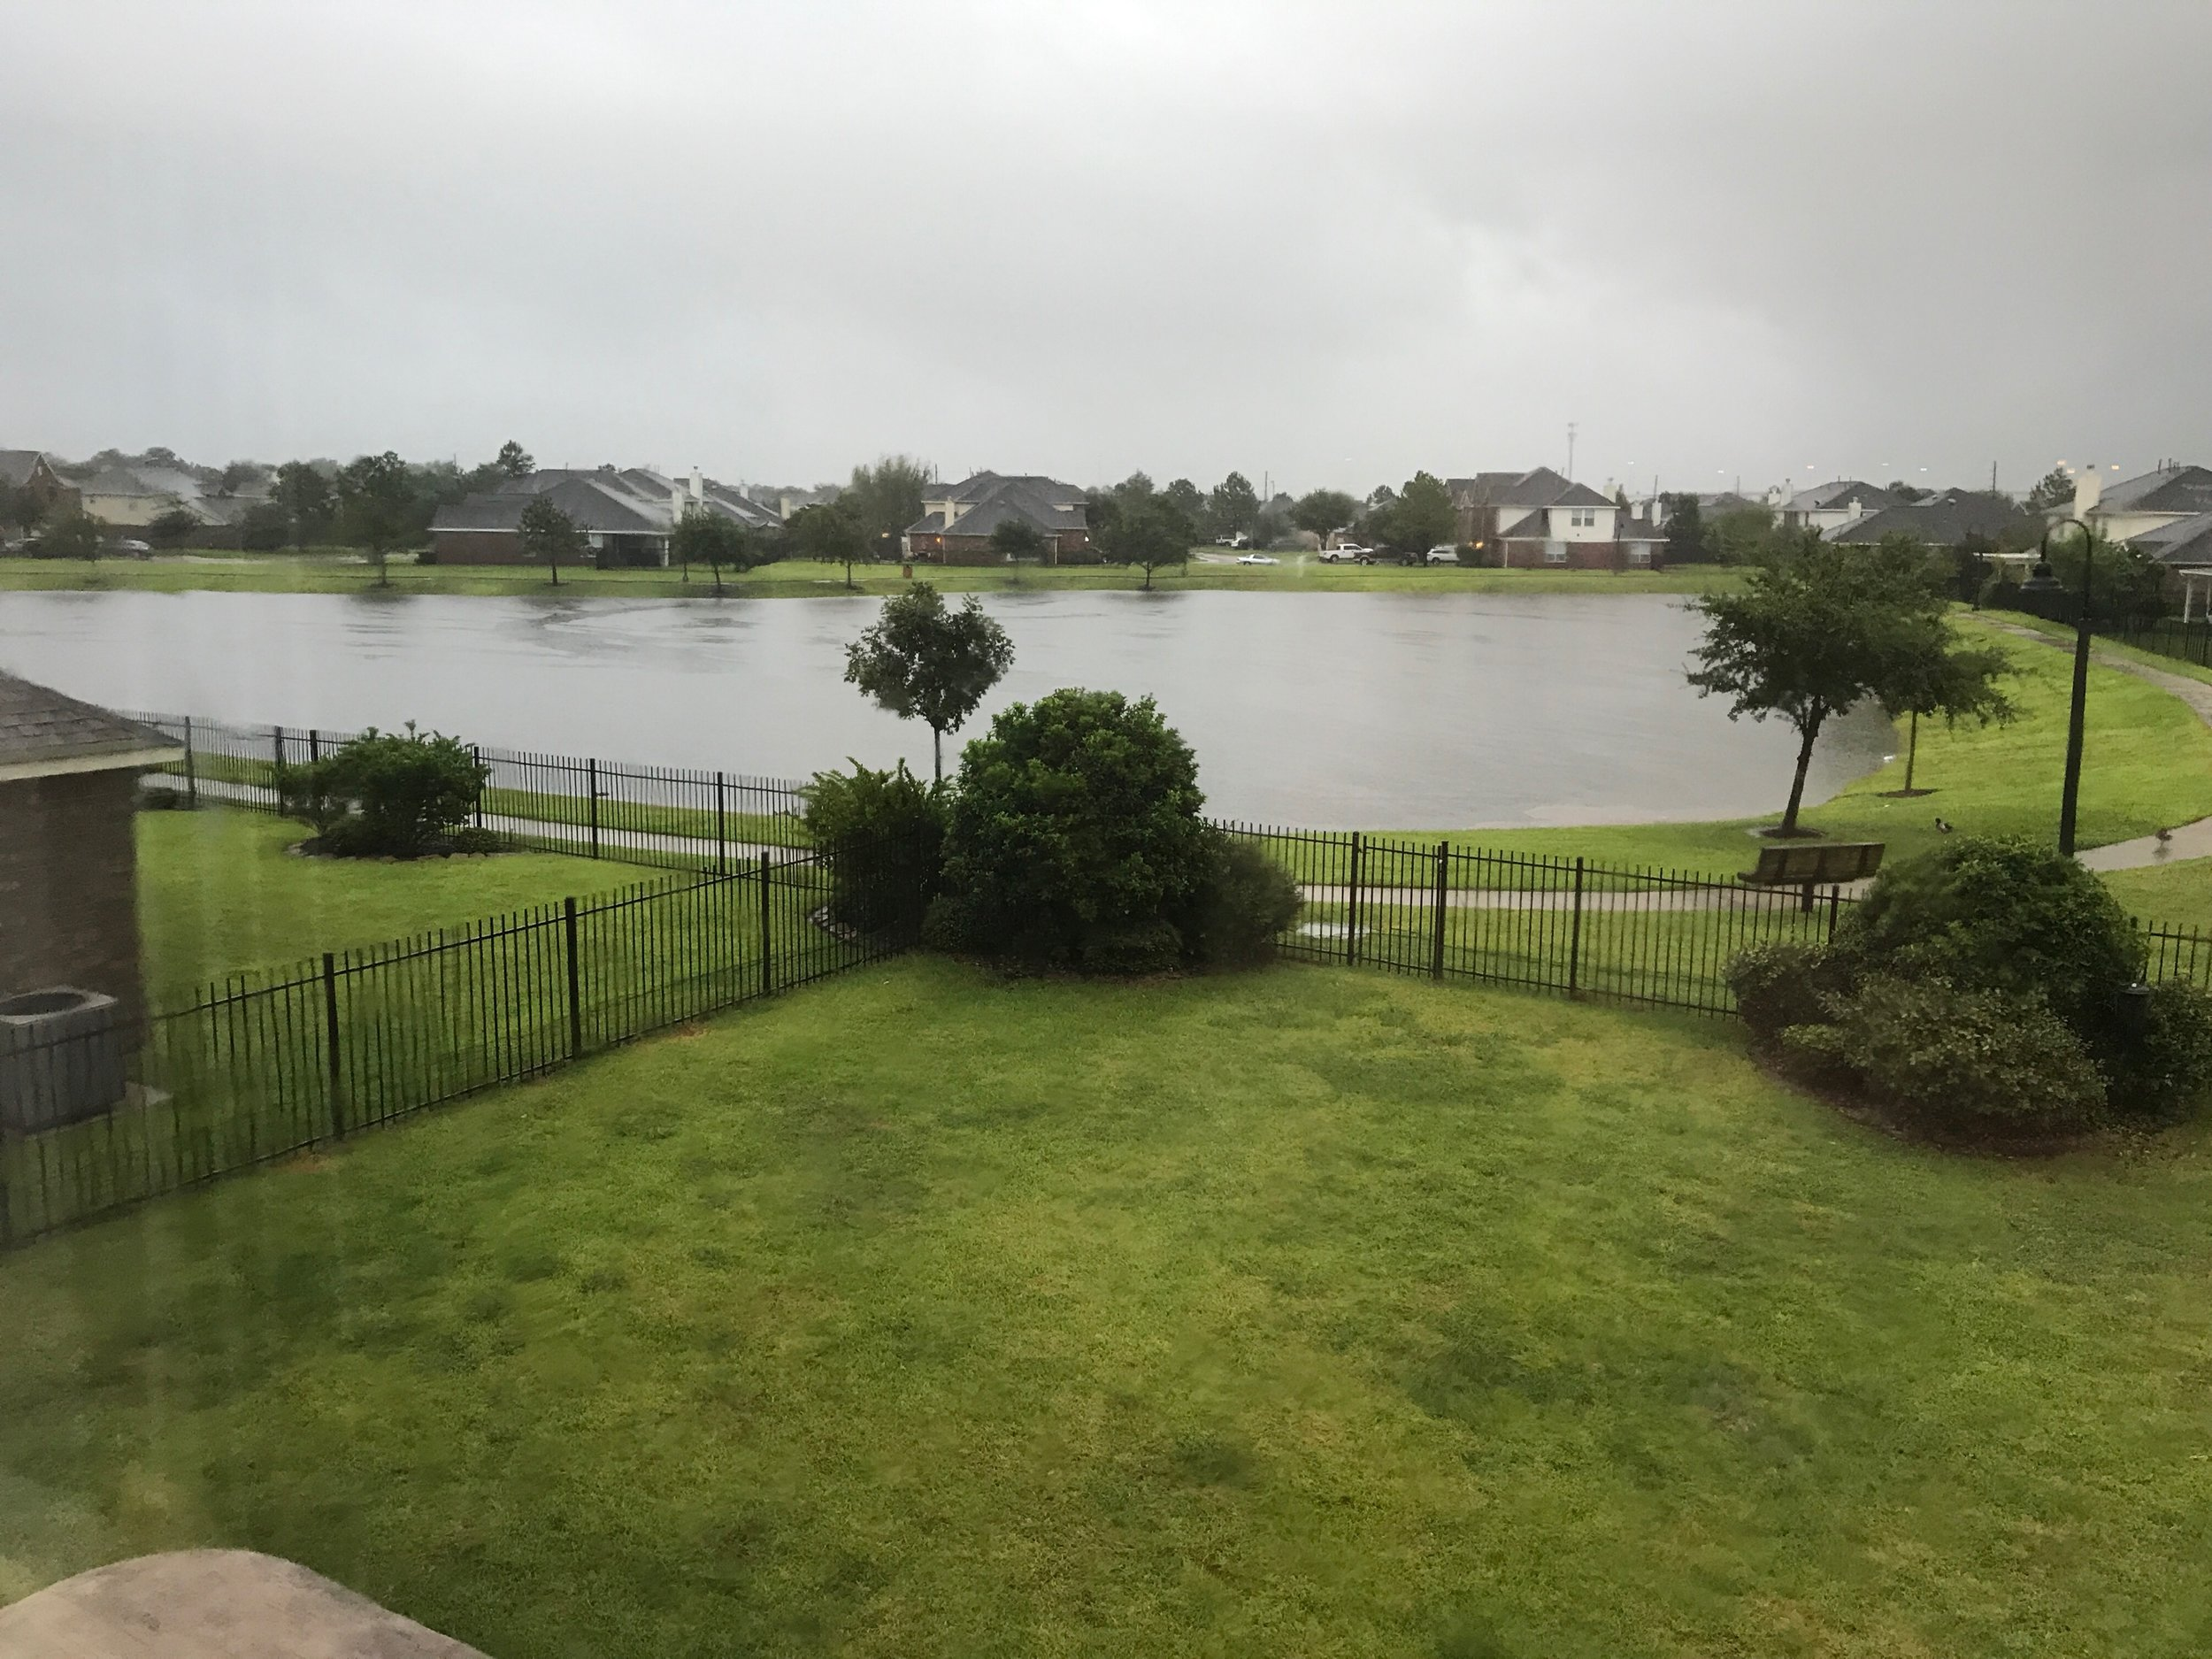 A view from the retention pond from 10 am Sunday August 27th.